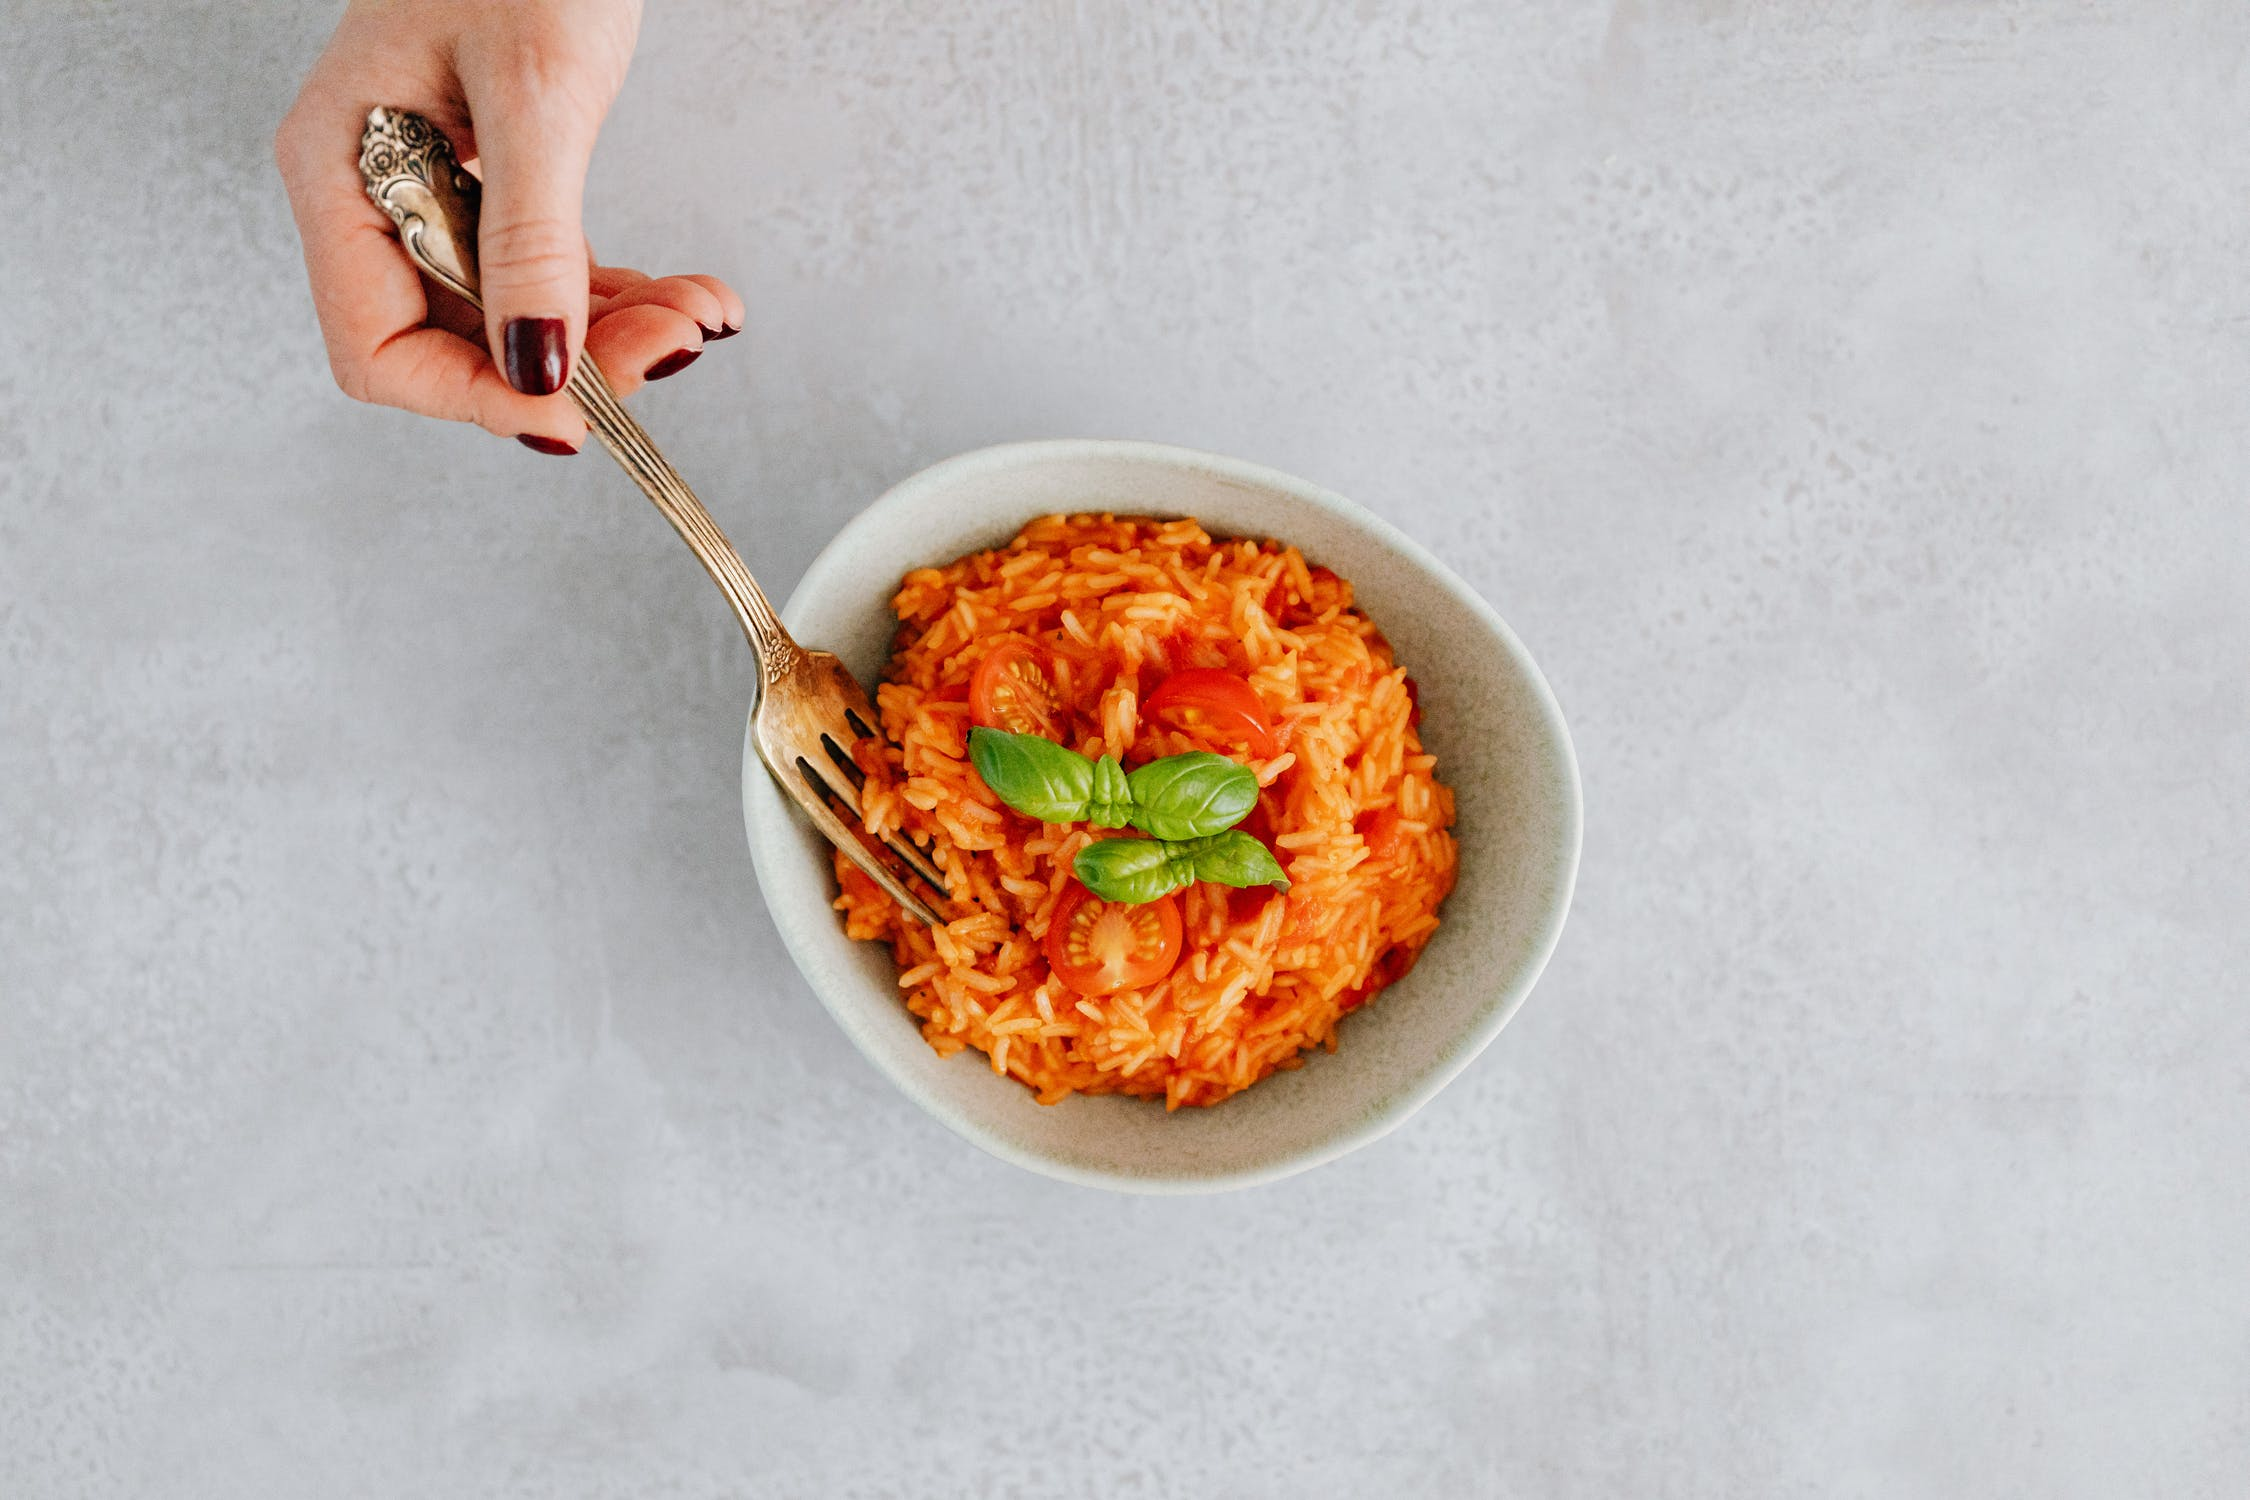 A creamy risotto with tomatoes on top